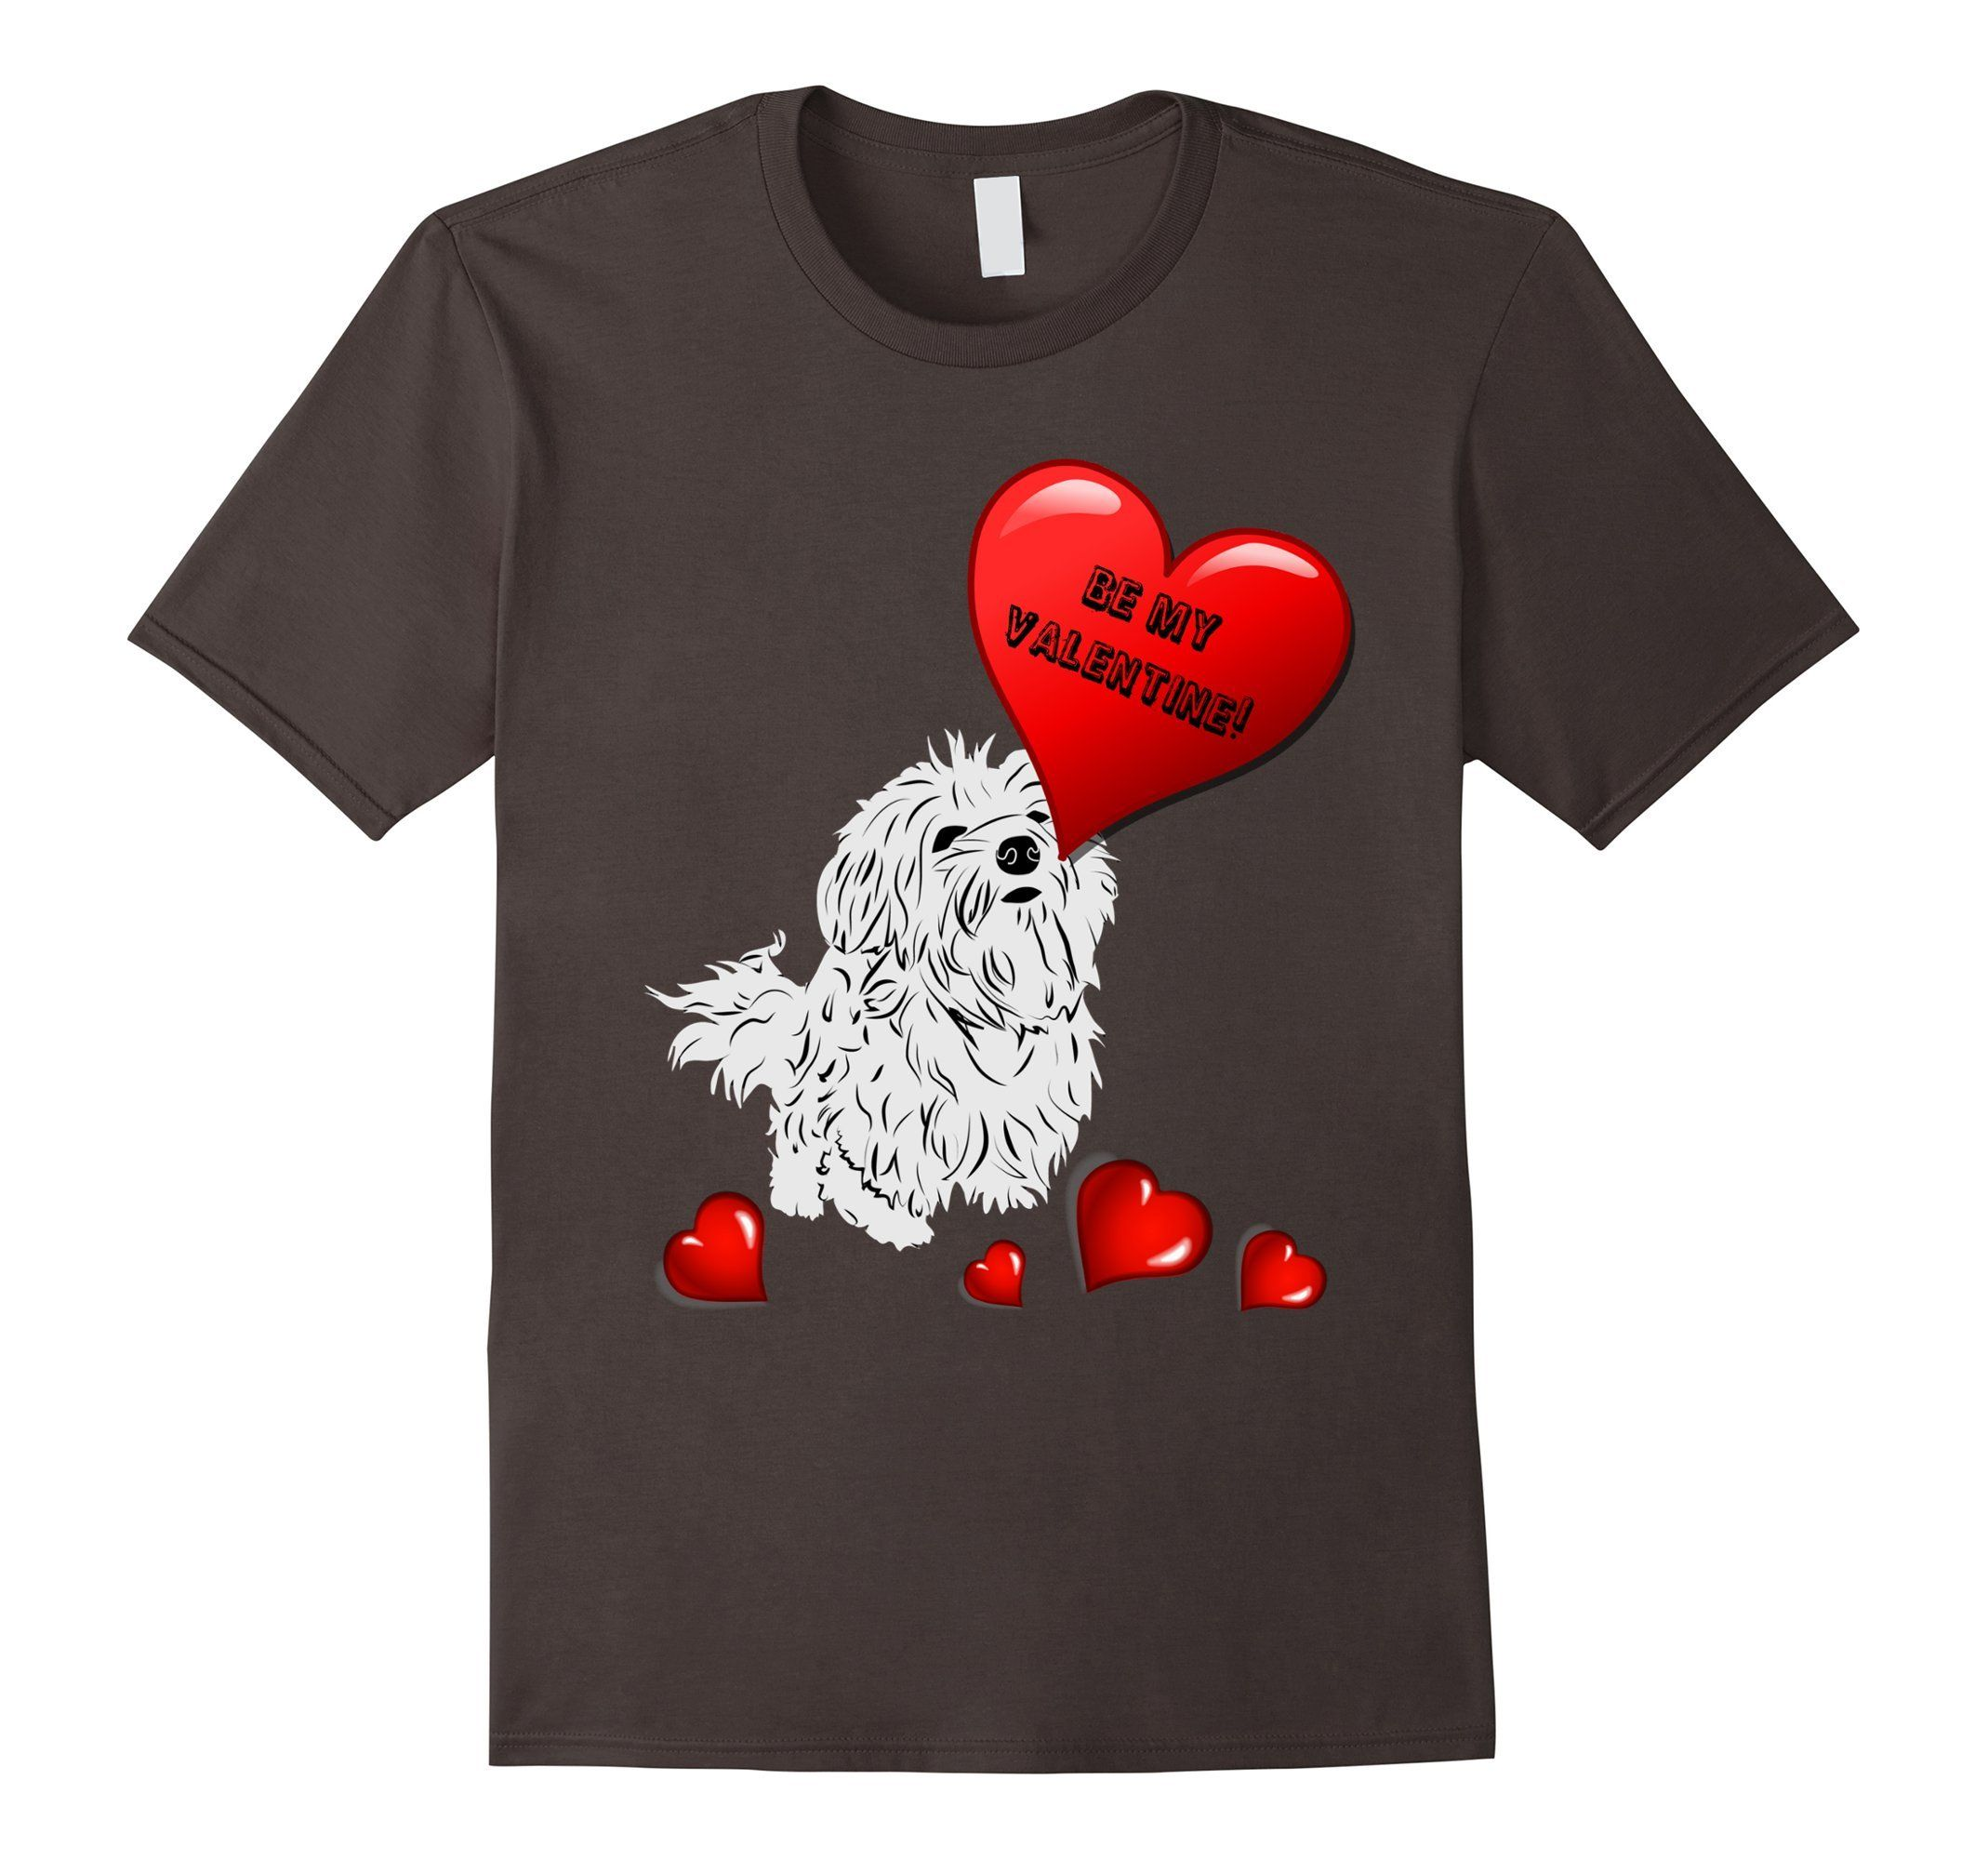 Be My Valentine T-Shirt: http://amzn.to/1OXFnPl